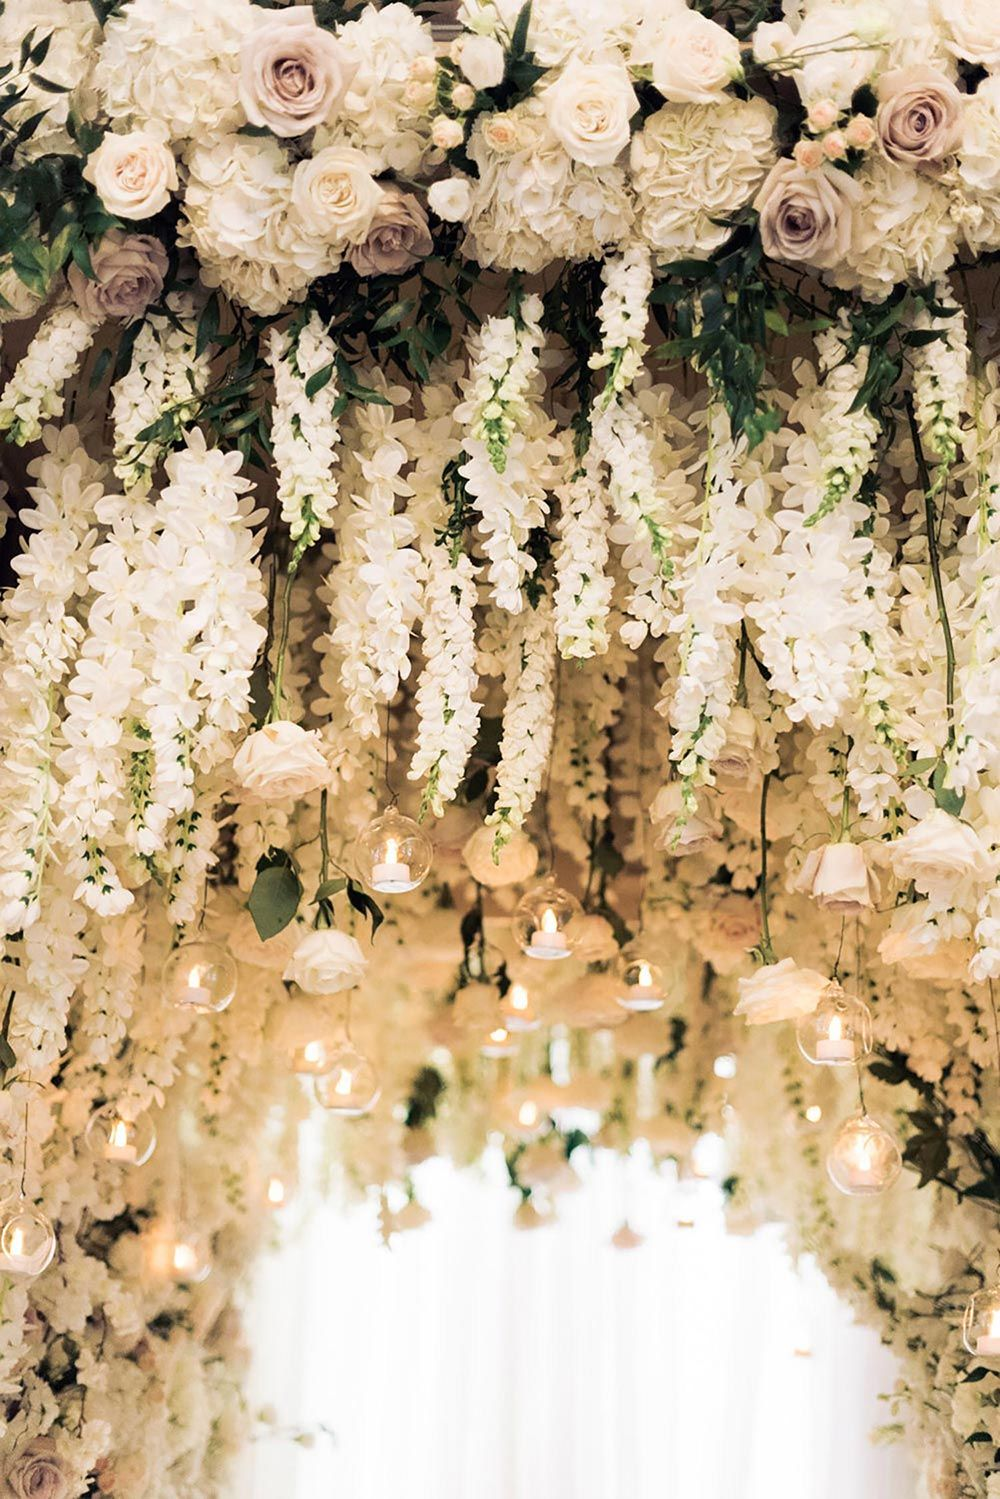 Luxurious Chateau Laurier Wedding With Floral Tunnel Ruffled Wedding Ceiling Wedding Ceiling Decorations Wedding Decorations